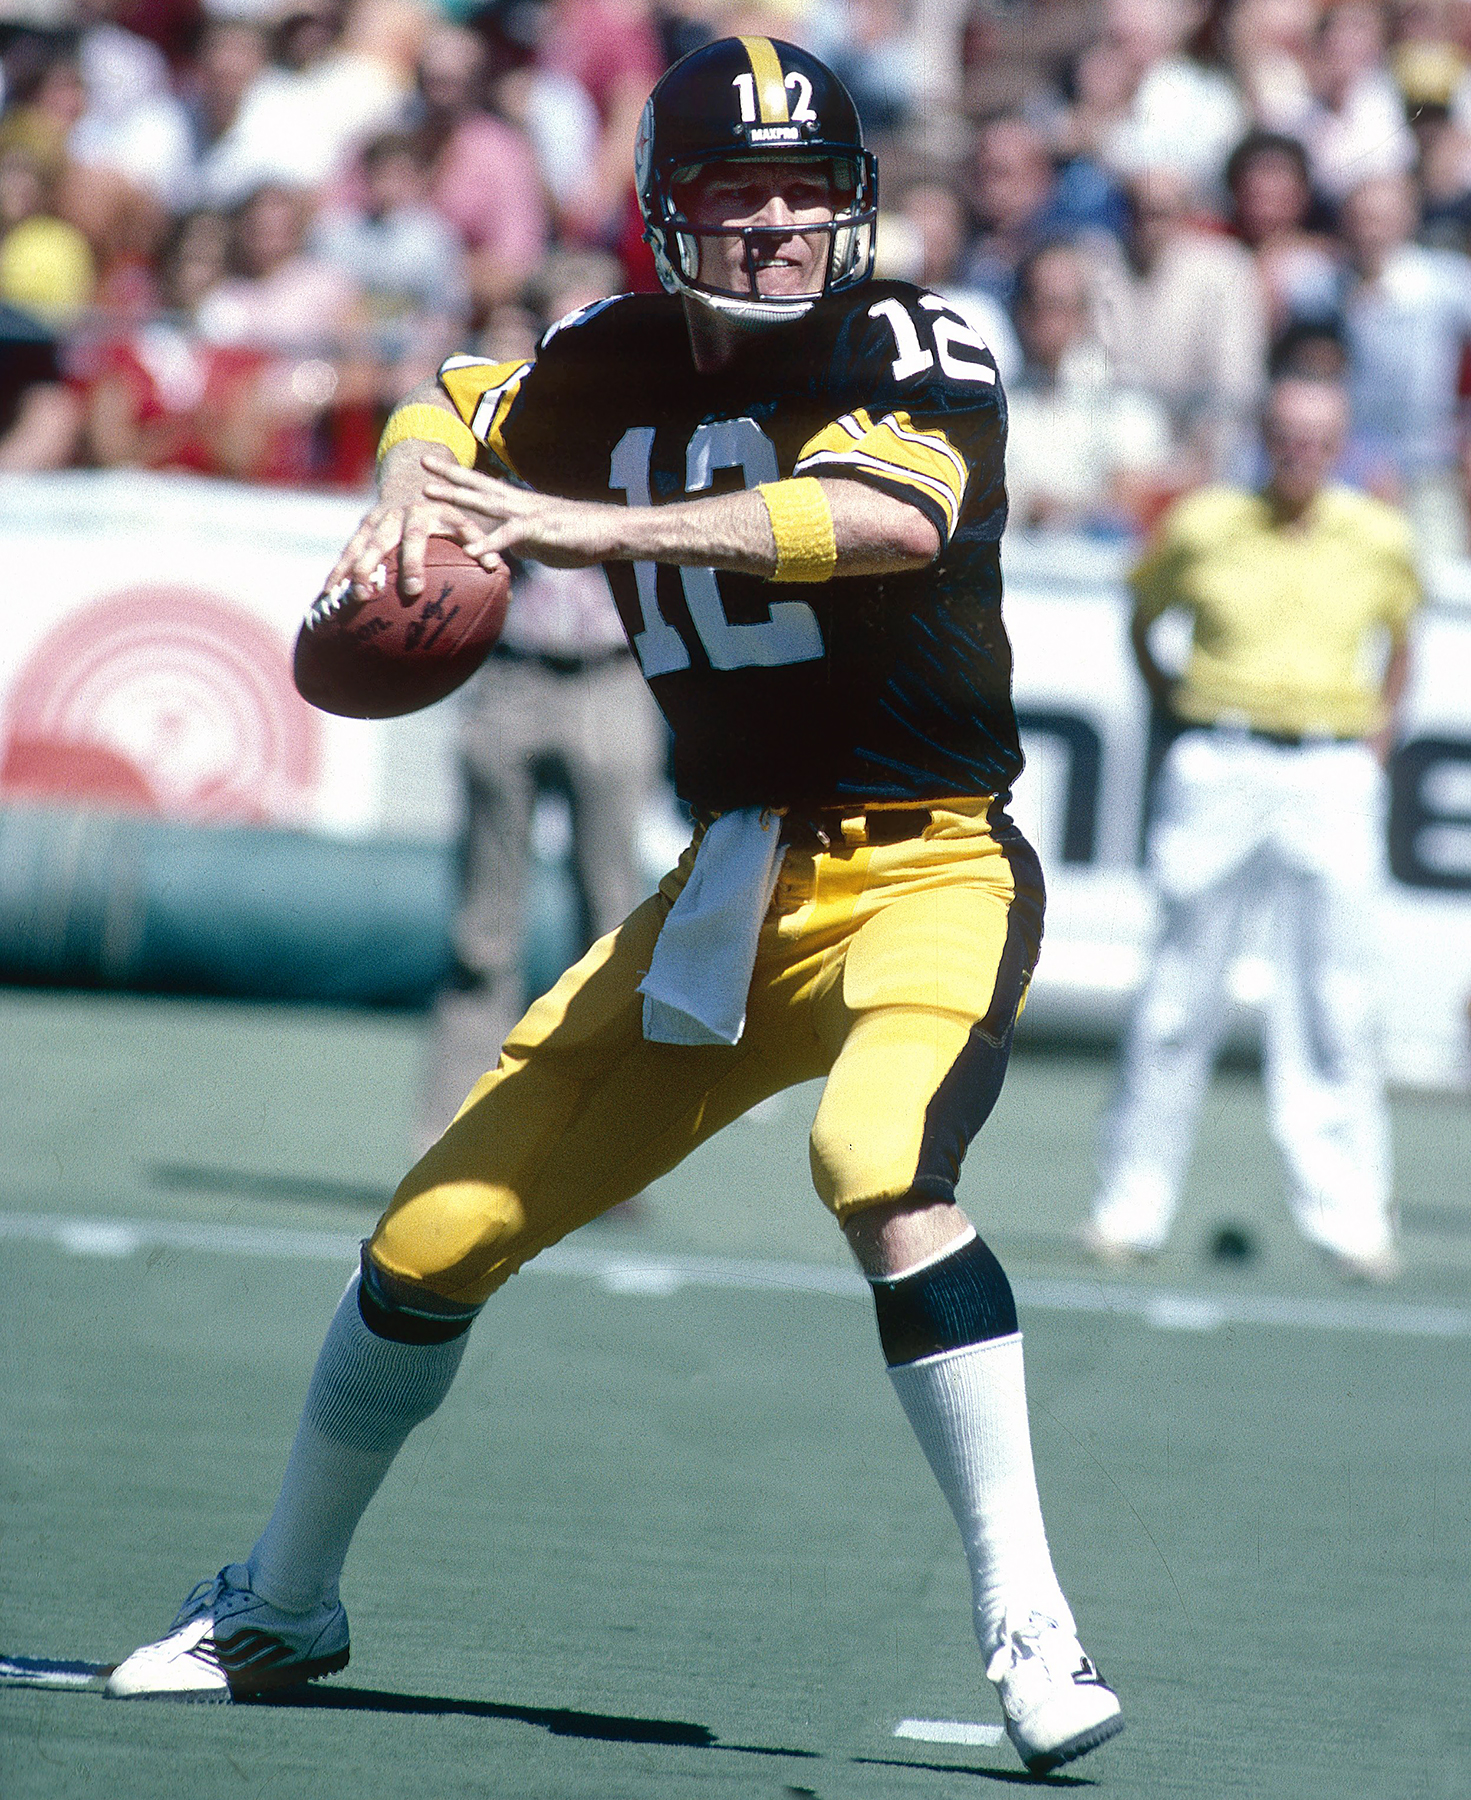 Terry Bradshaw #12 of the Pittsburgh Steelers circa 1970's